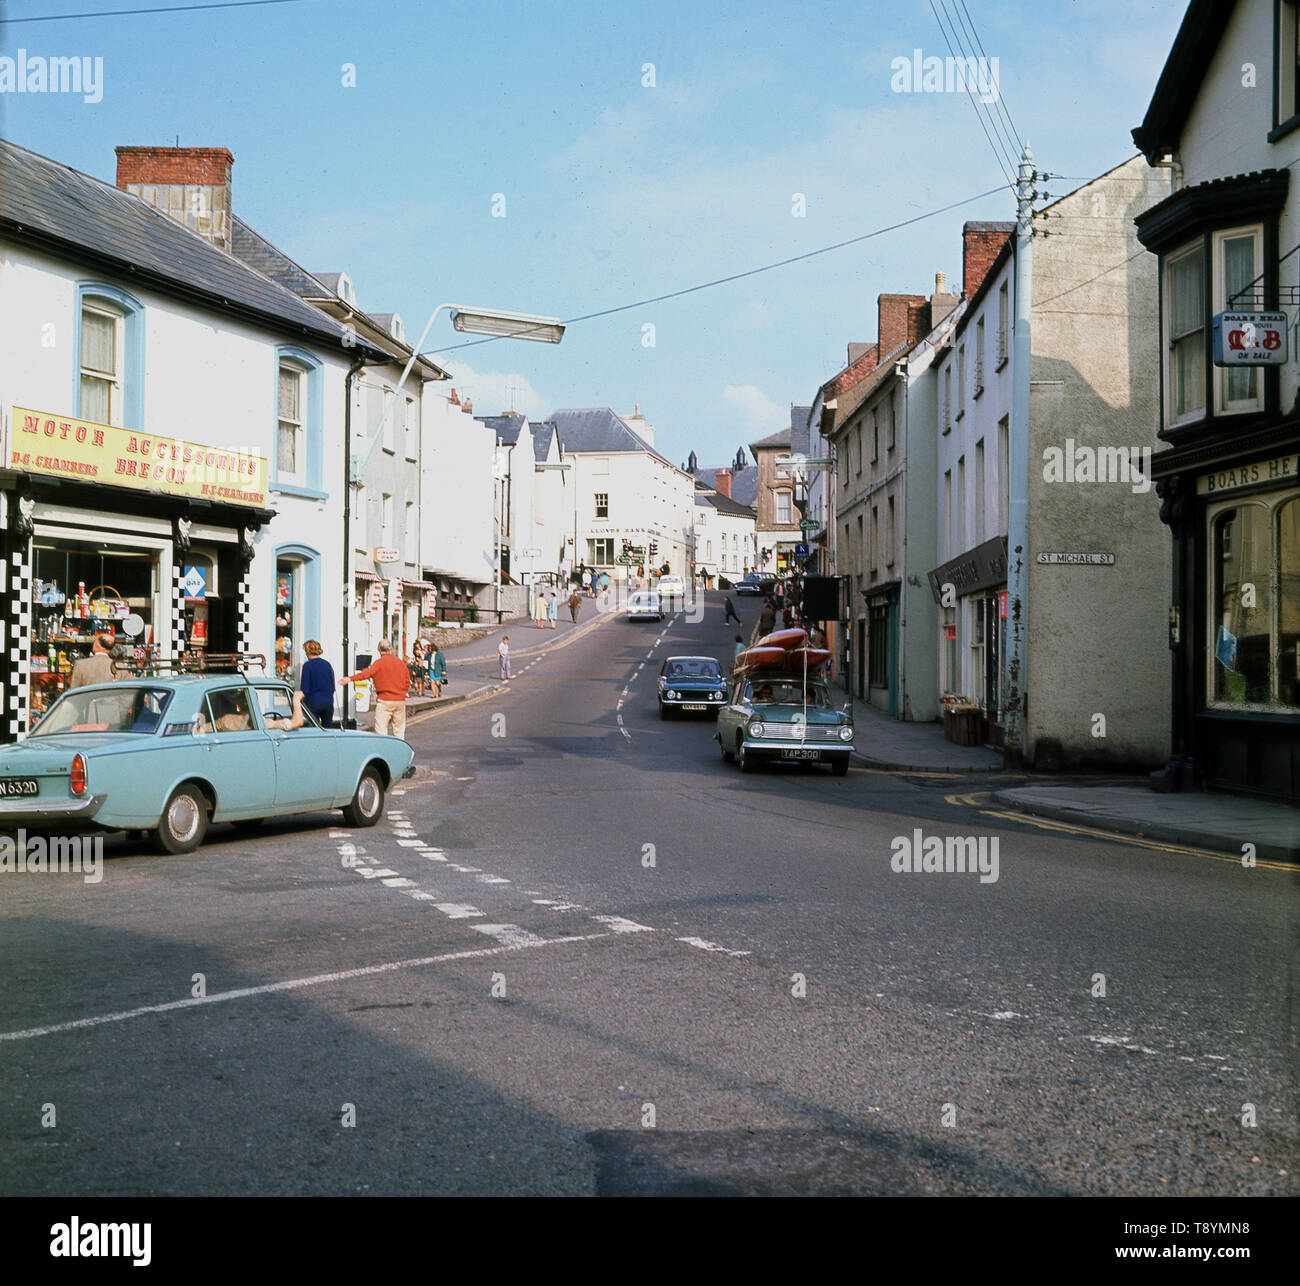 1960s, historical picture from this era of St Michael street, Brecon, Powys, Wales, showing the Chambers family Motor Parts shop and on the far right, the  M & B Boars Head pub. - Stock Image